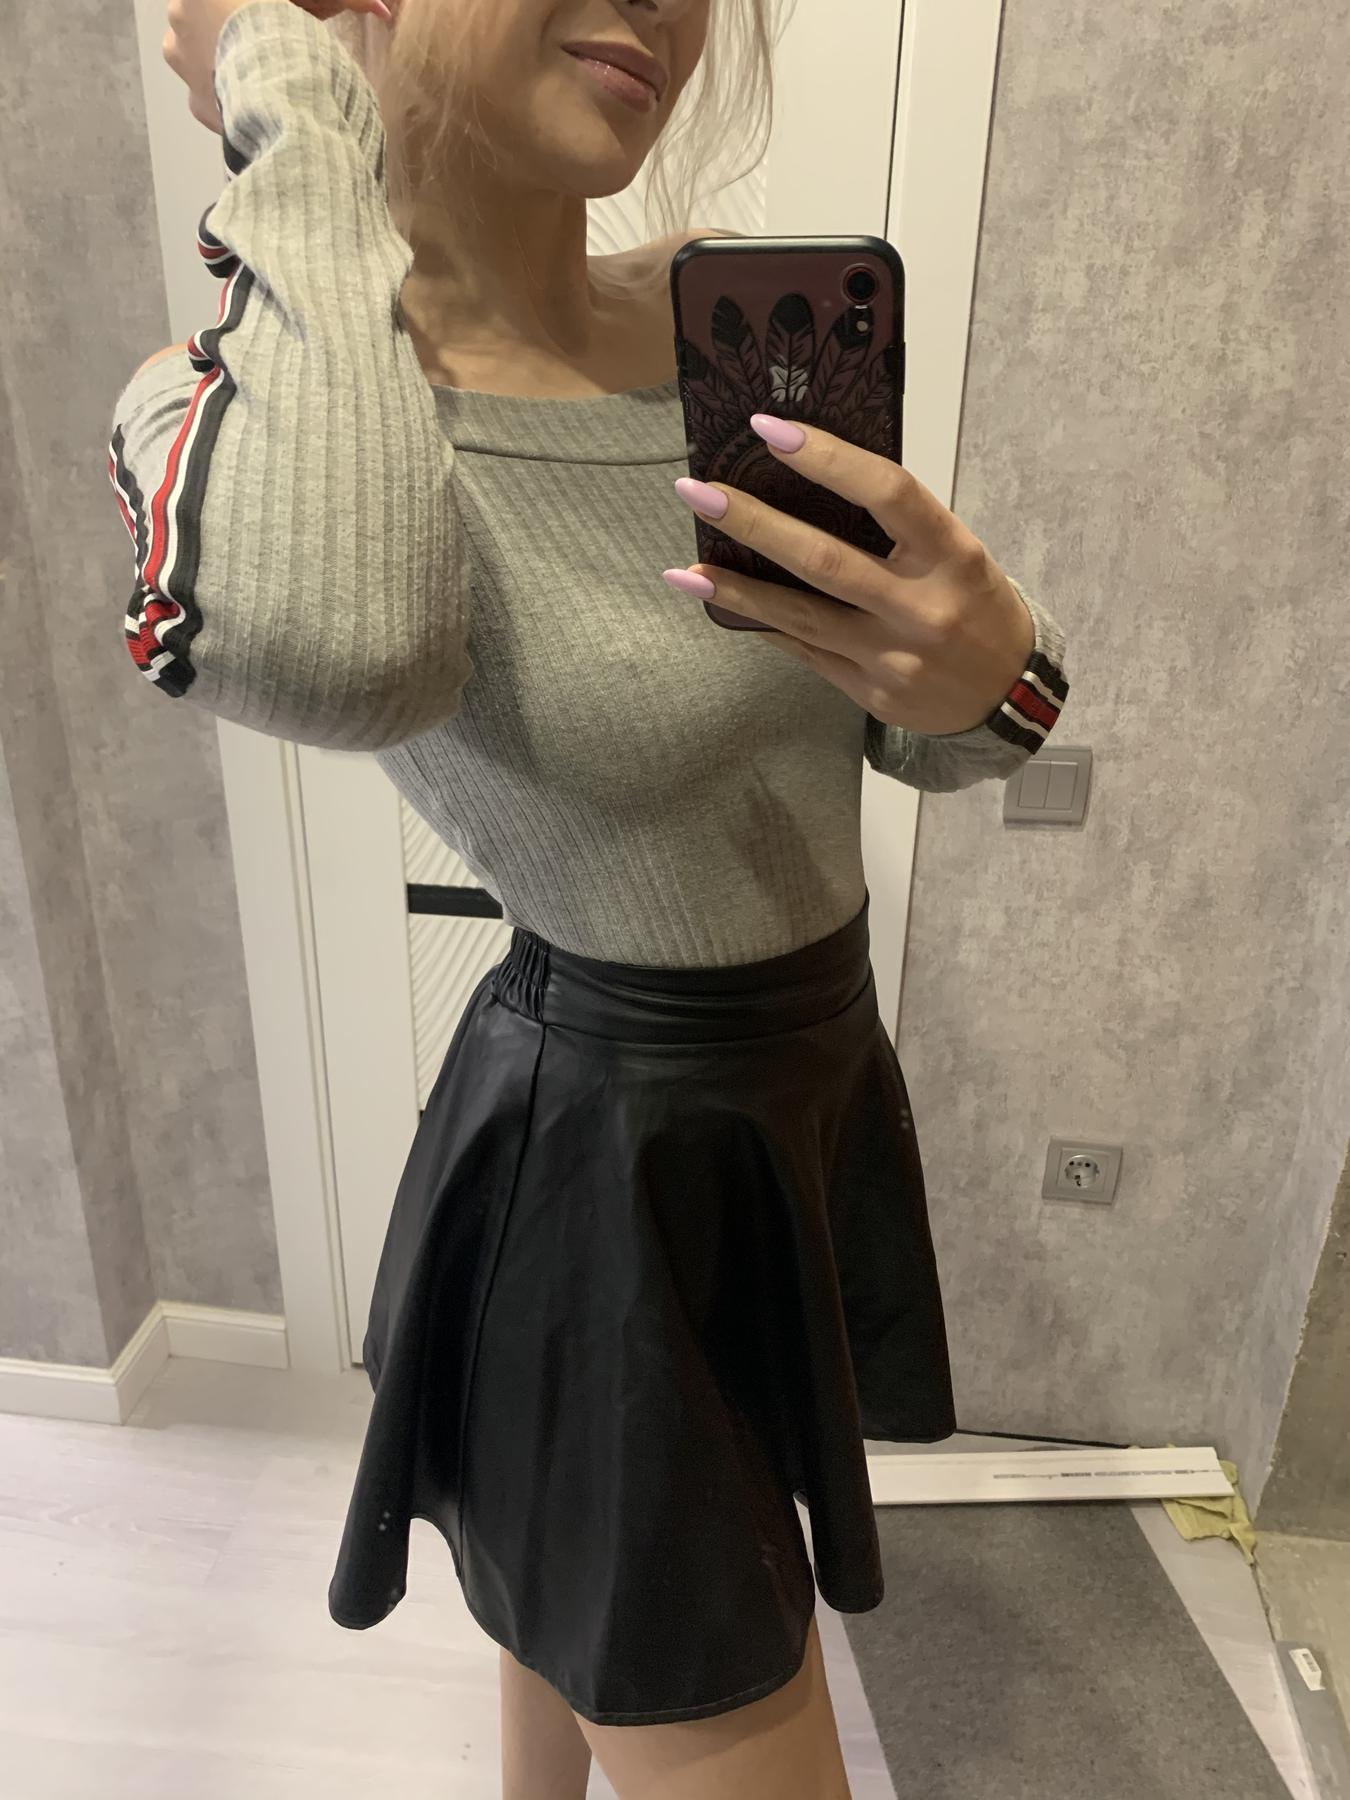 Picture with tags: Selfie, Girl